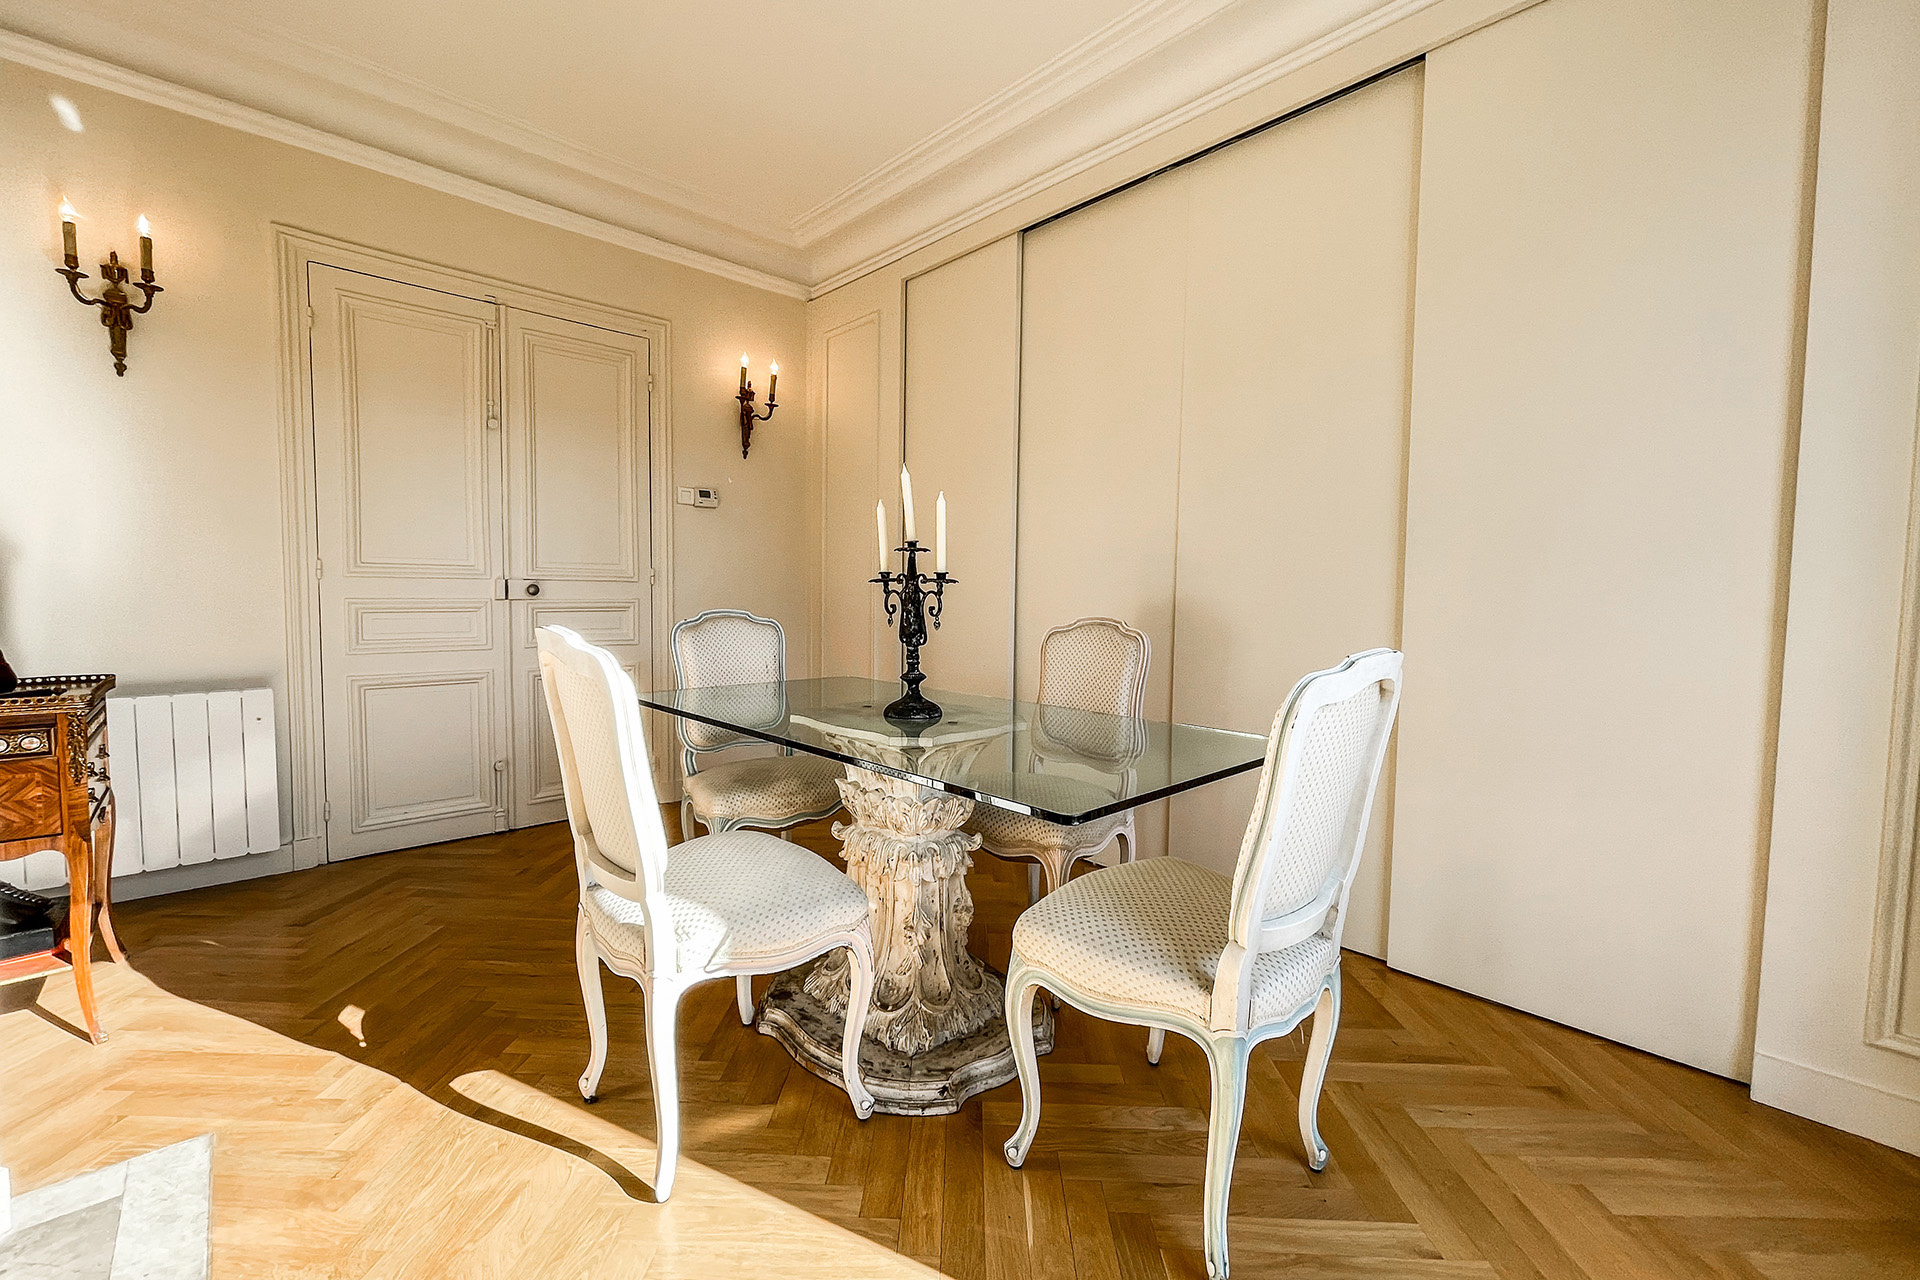 Slide the doors for additional privacy in the dining room.